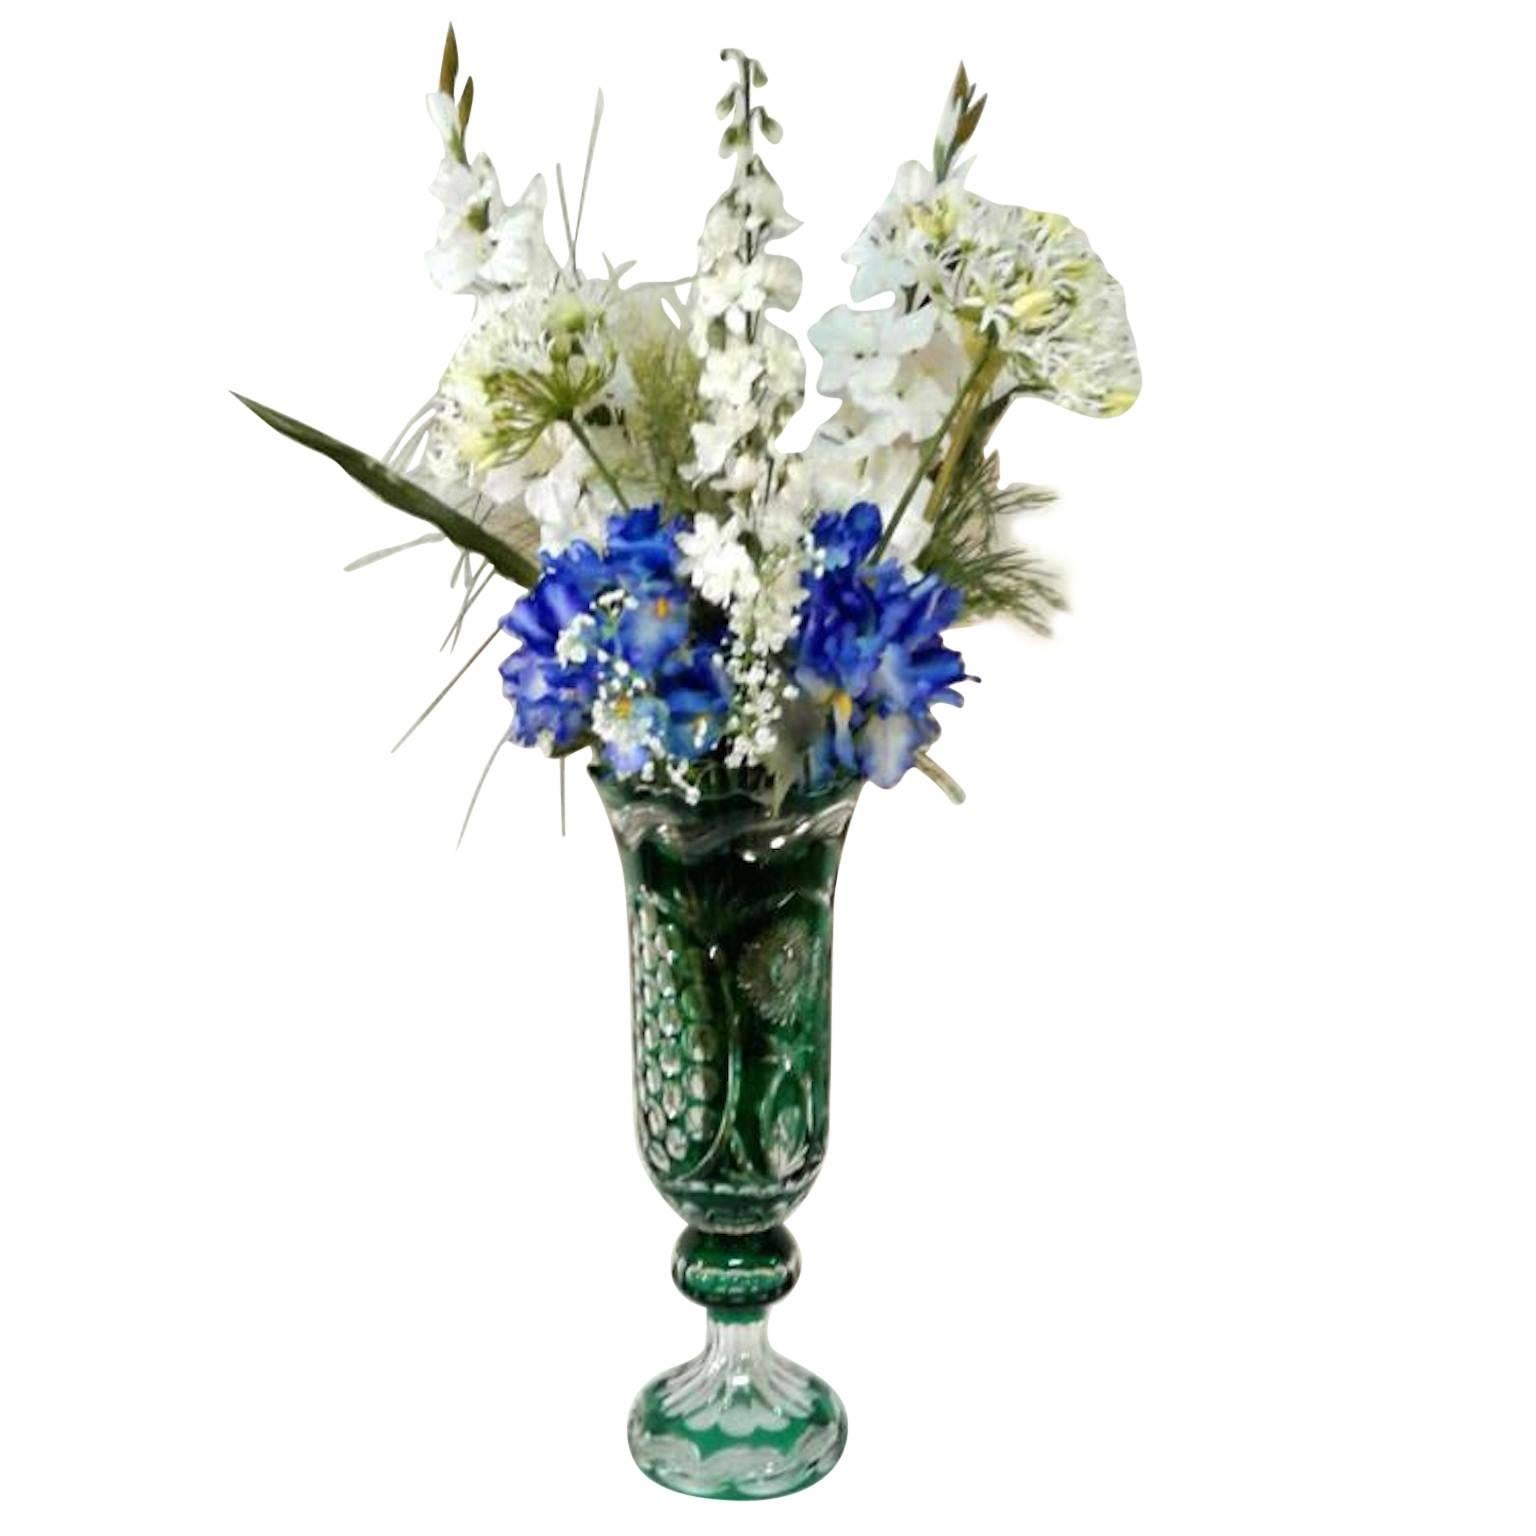 Green Chrystal Vase with Silk Flowers For Sale  sc 1 st  1stDibs & Green Chrystal Vase with Silk Flowers For Sale at 1stdibs